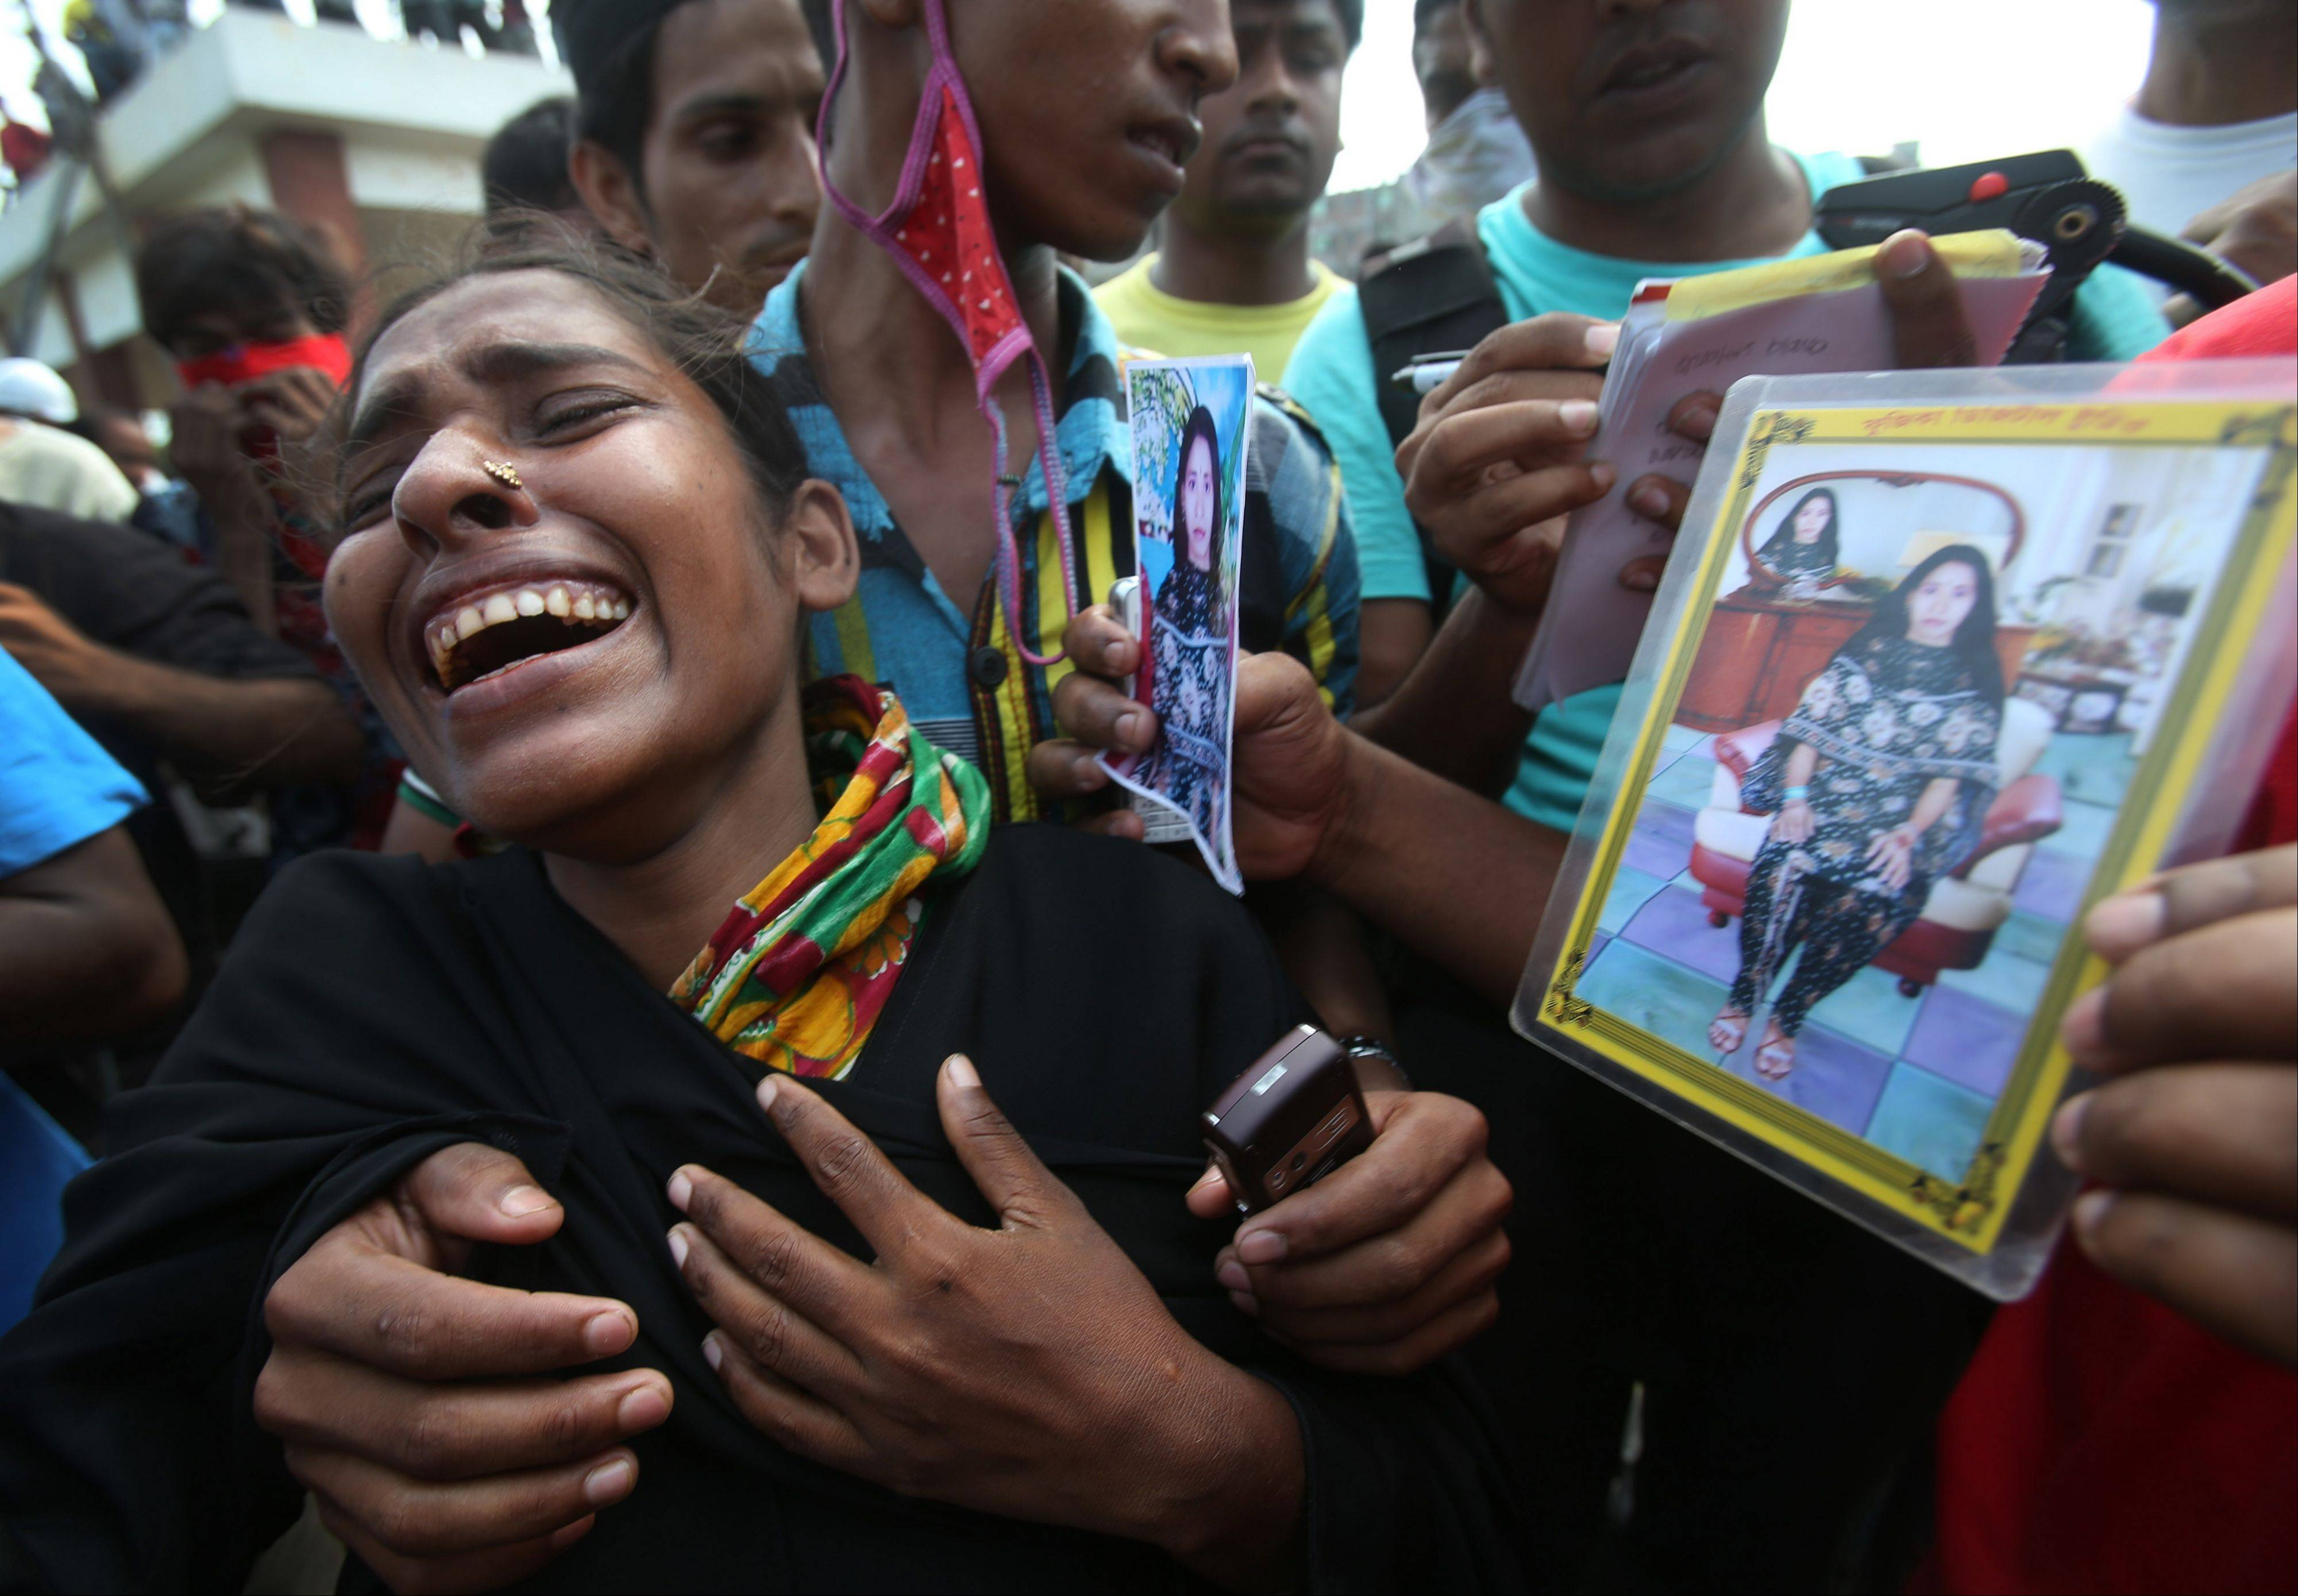 Farida, center, cries as she searches for her sister-in-law Fahima, seen in photographs. Just moments before Fahima was to be placed in one of the dozens of unmarked graves dug for victims of Bangladesh�s building collapse, Farida was able to claim and leave with her sister-in-law�s body.